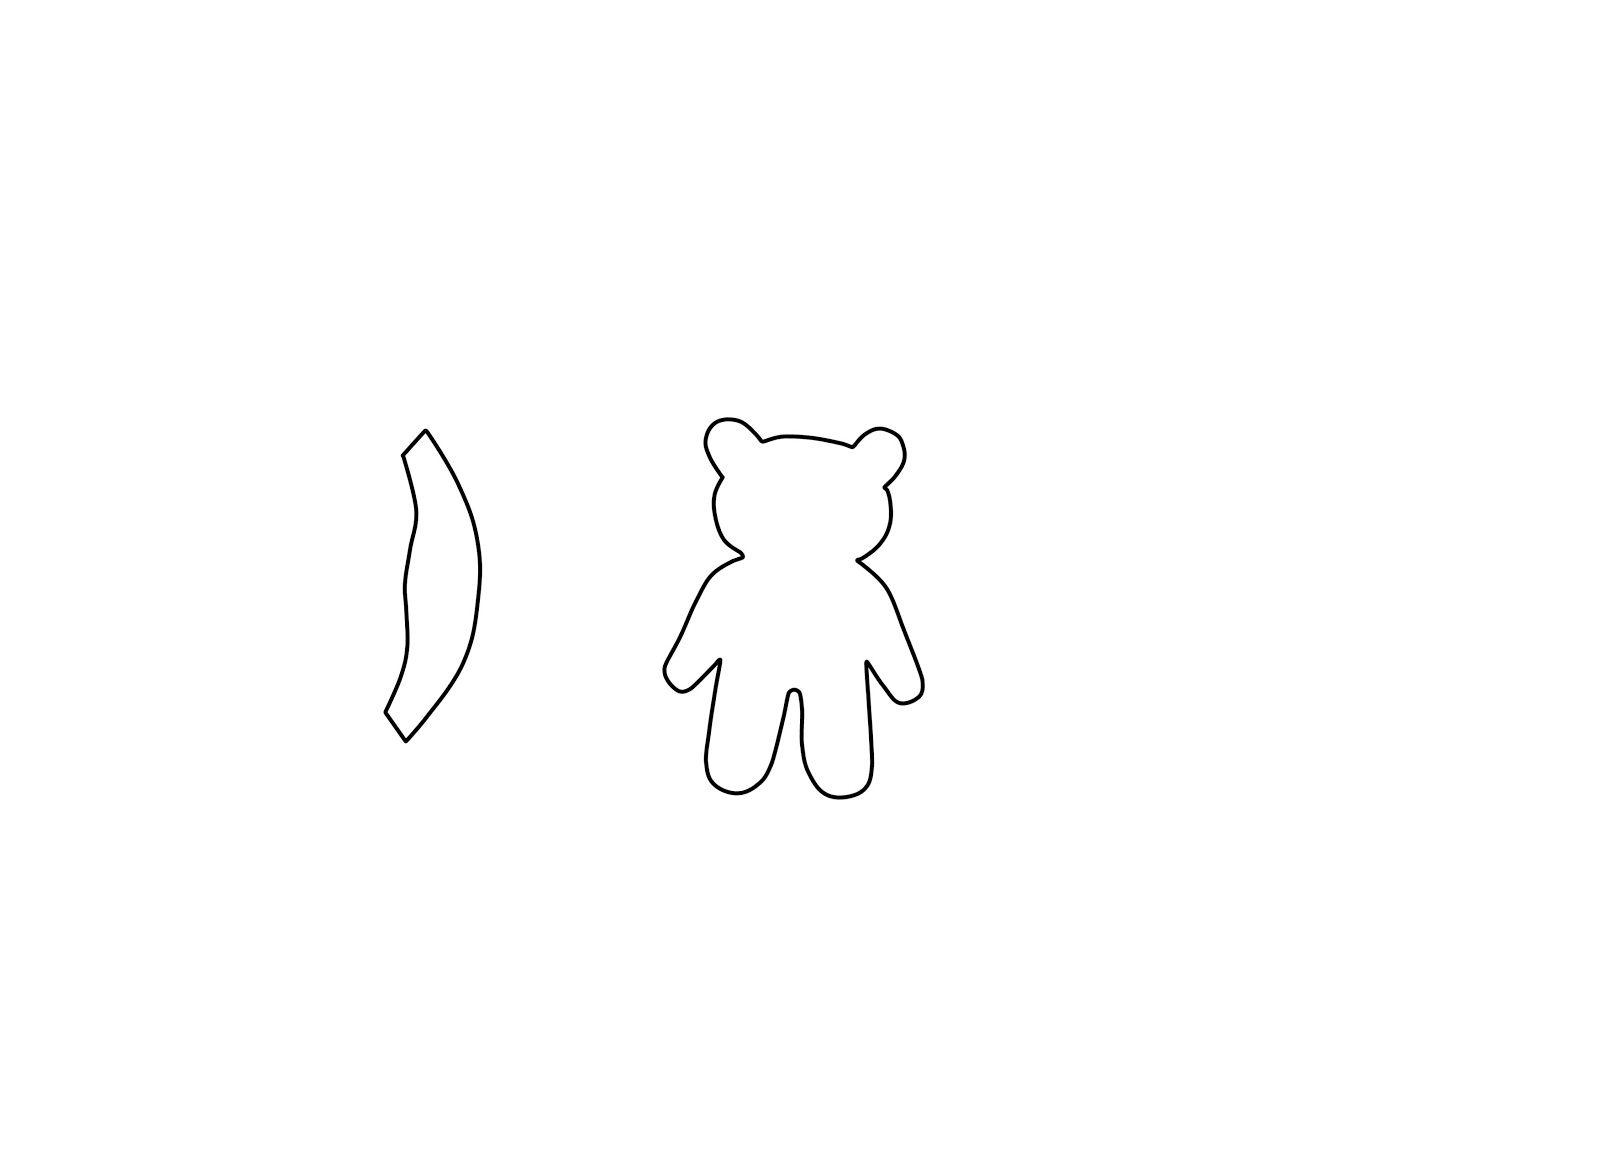 pudsey bear template printables children in need in need and colouring sheets on pinterest pudsey bear printables template